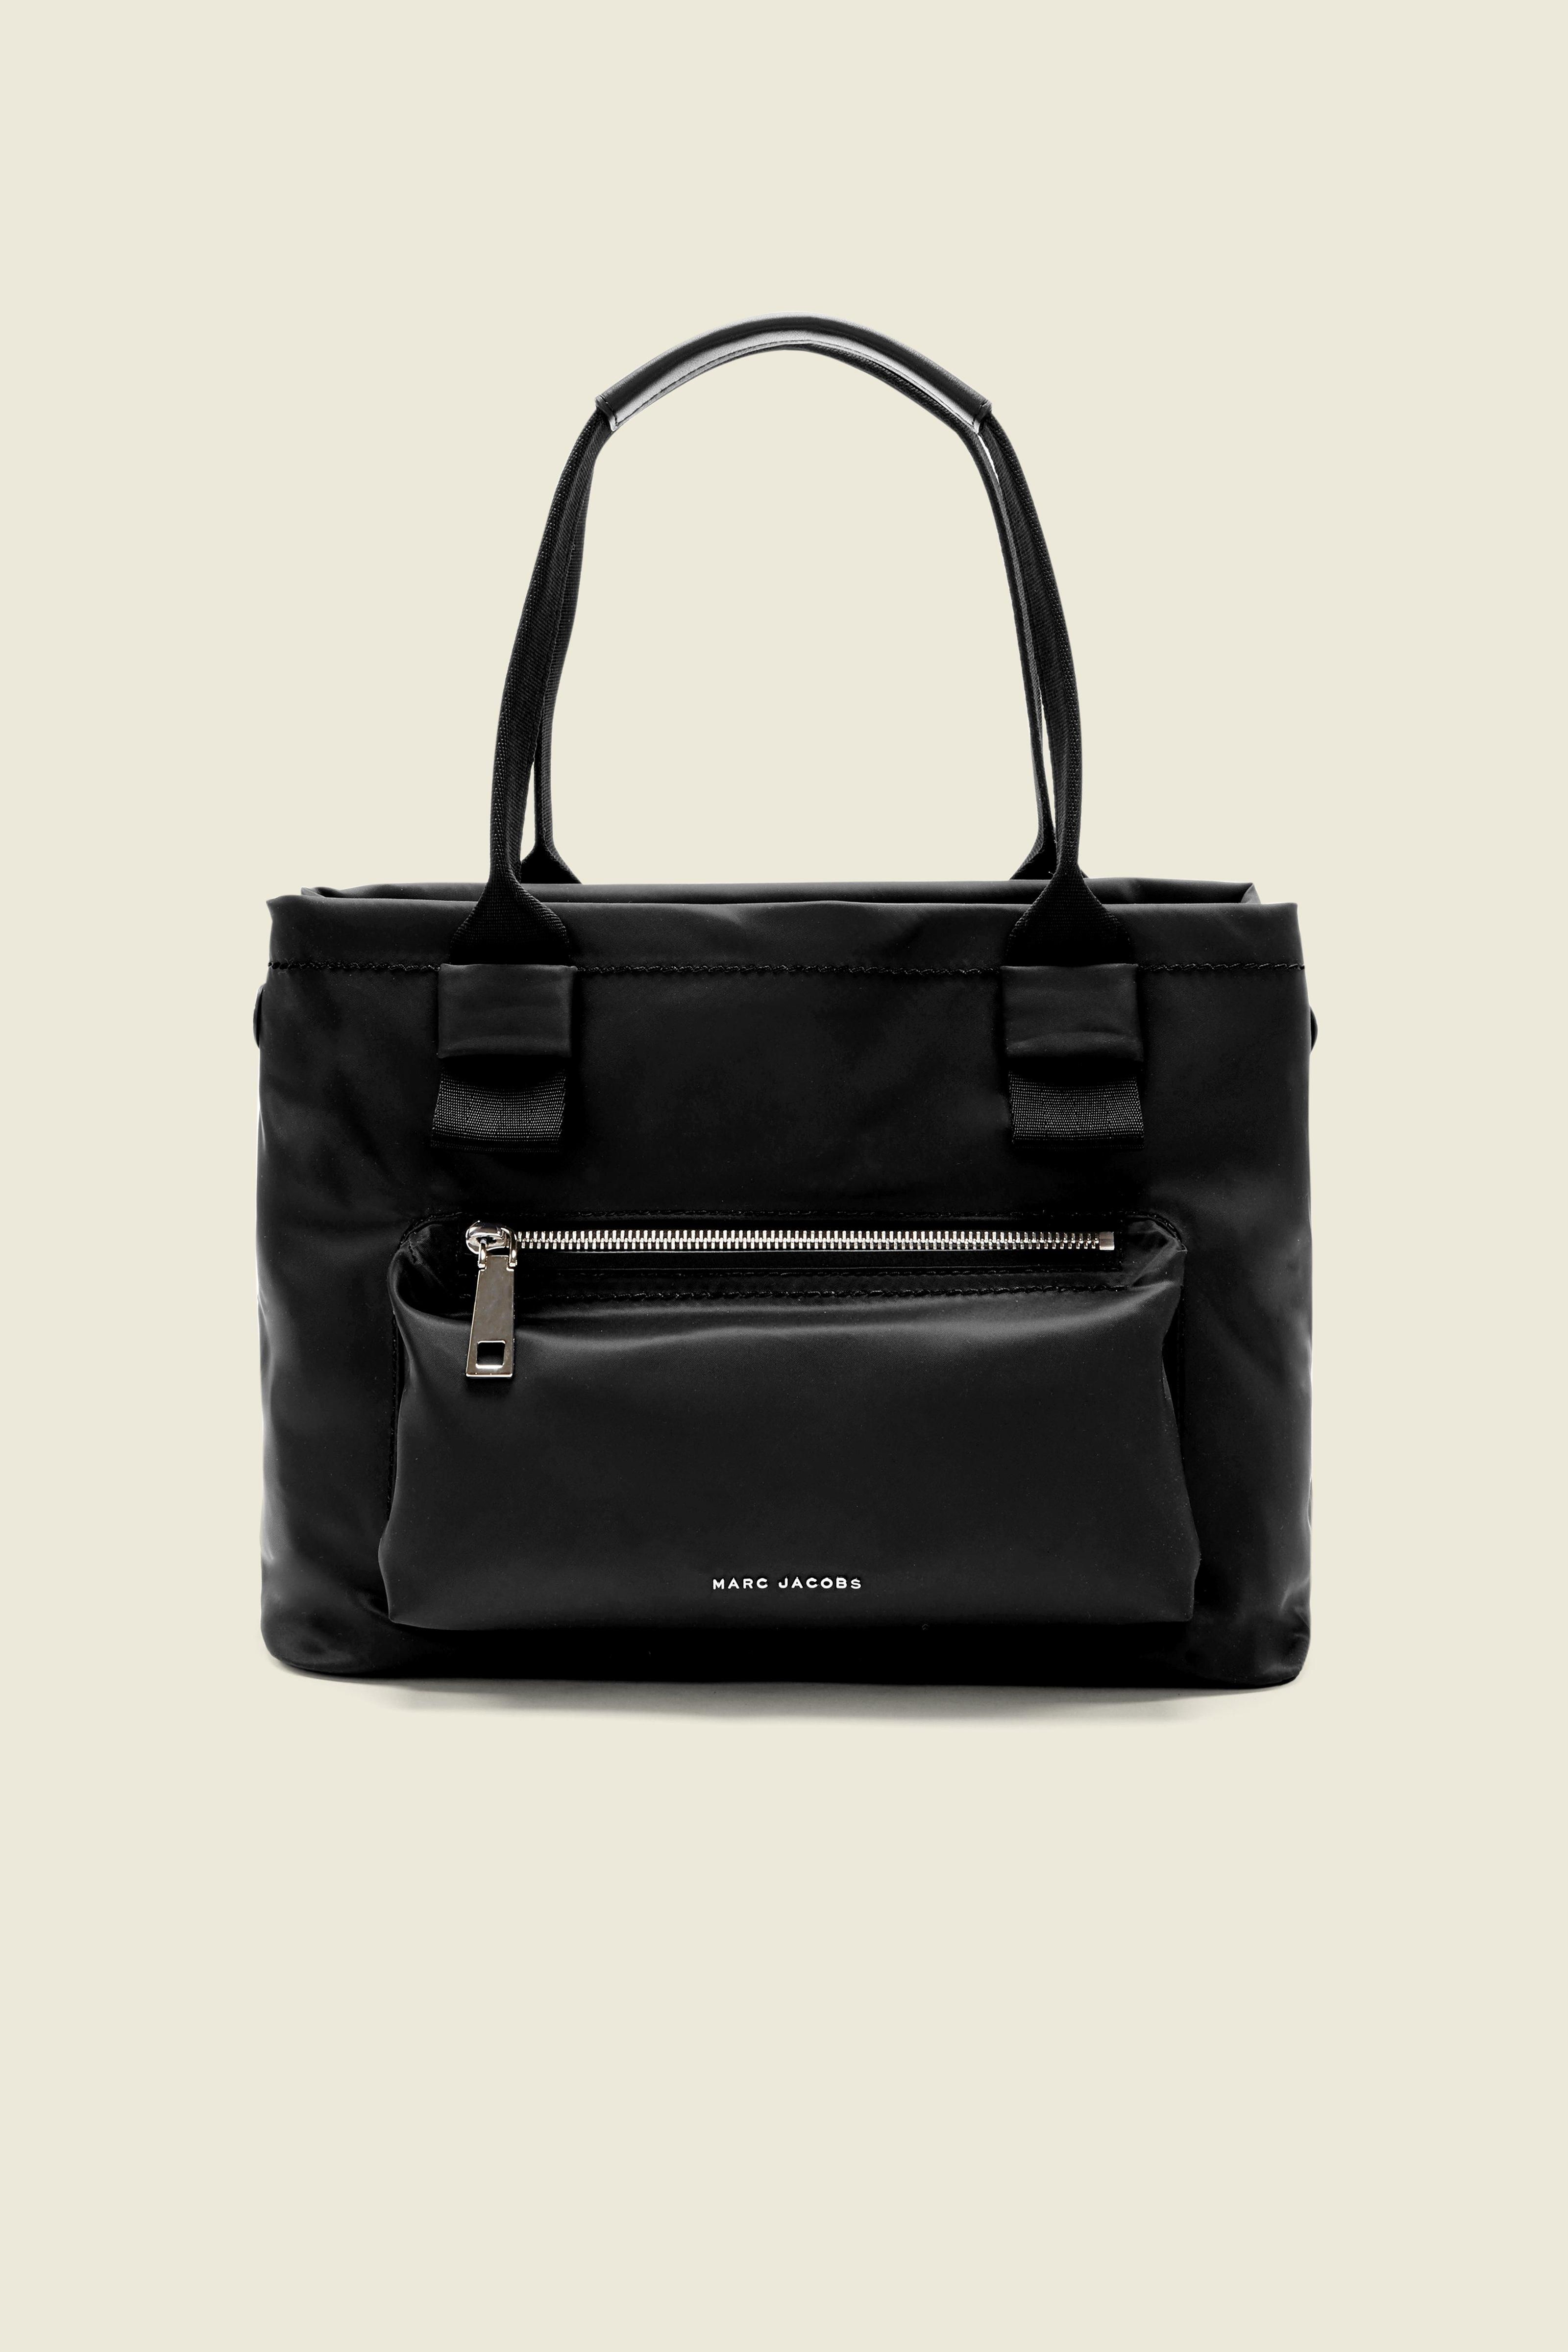 The everyday tote is here. Shop the Easy Tote Bag Bag from Marc Jacobs  today! 34dcb0c319170